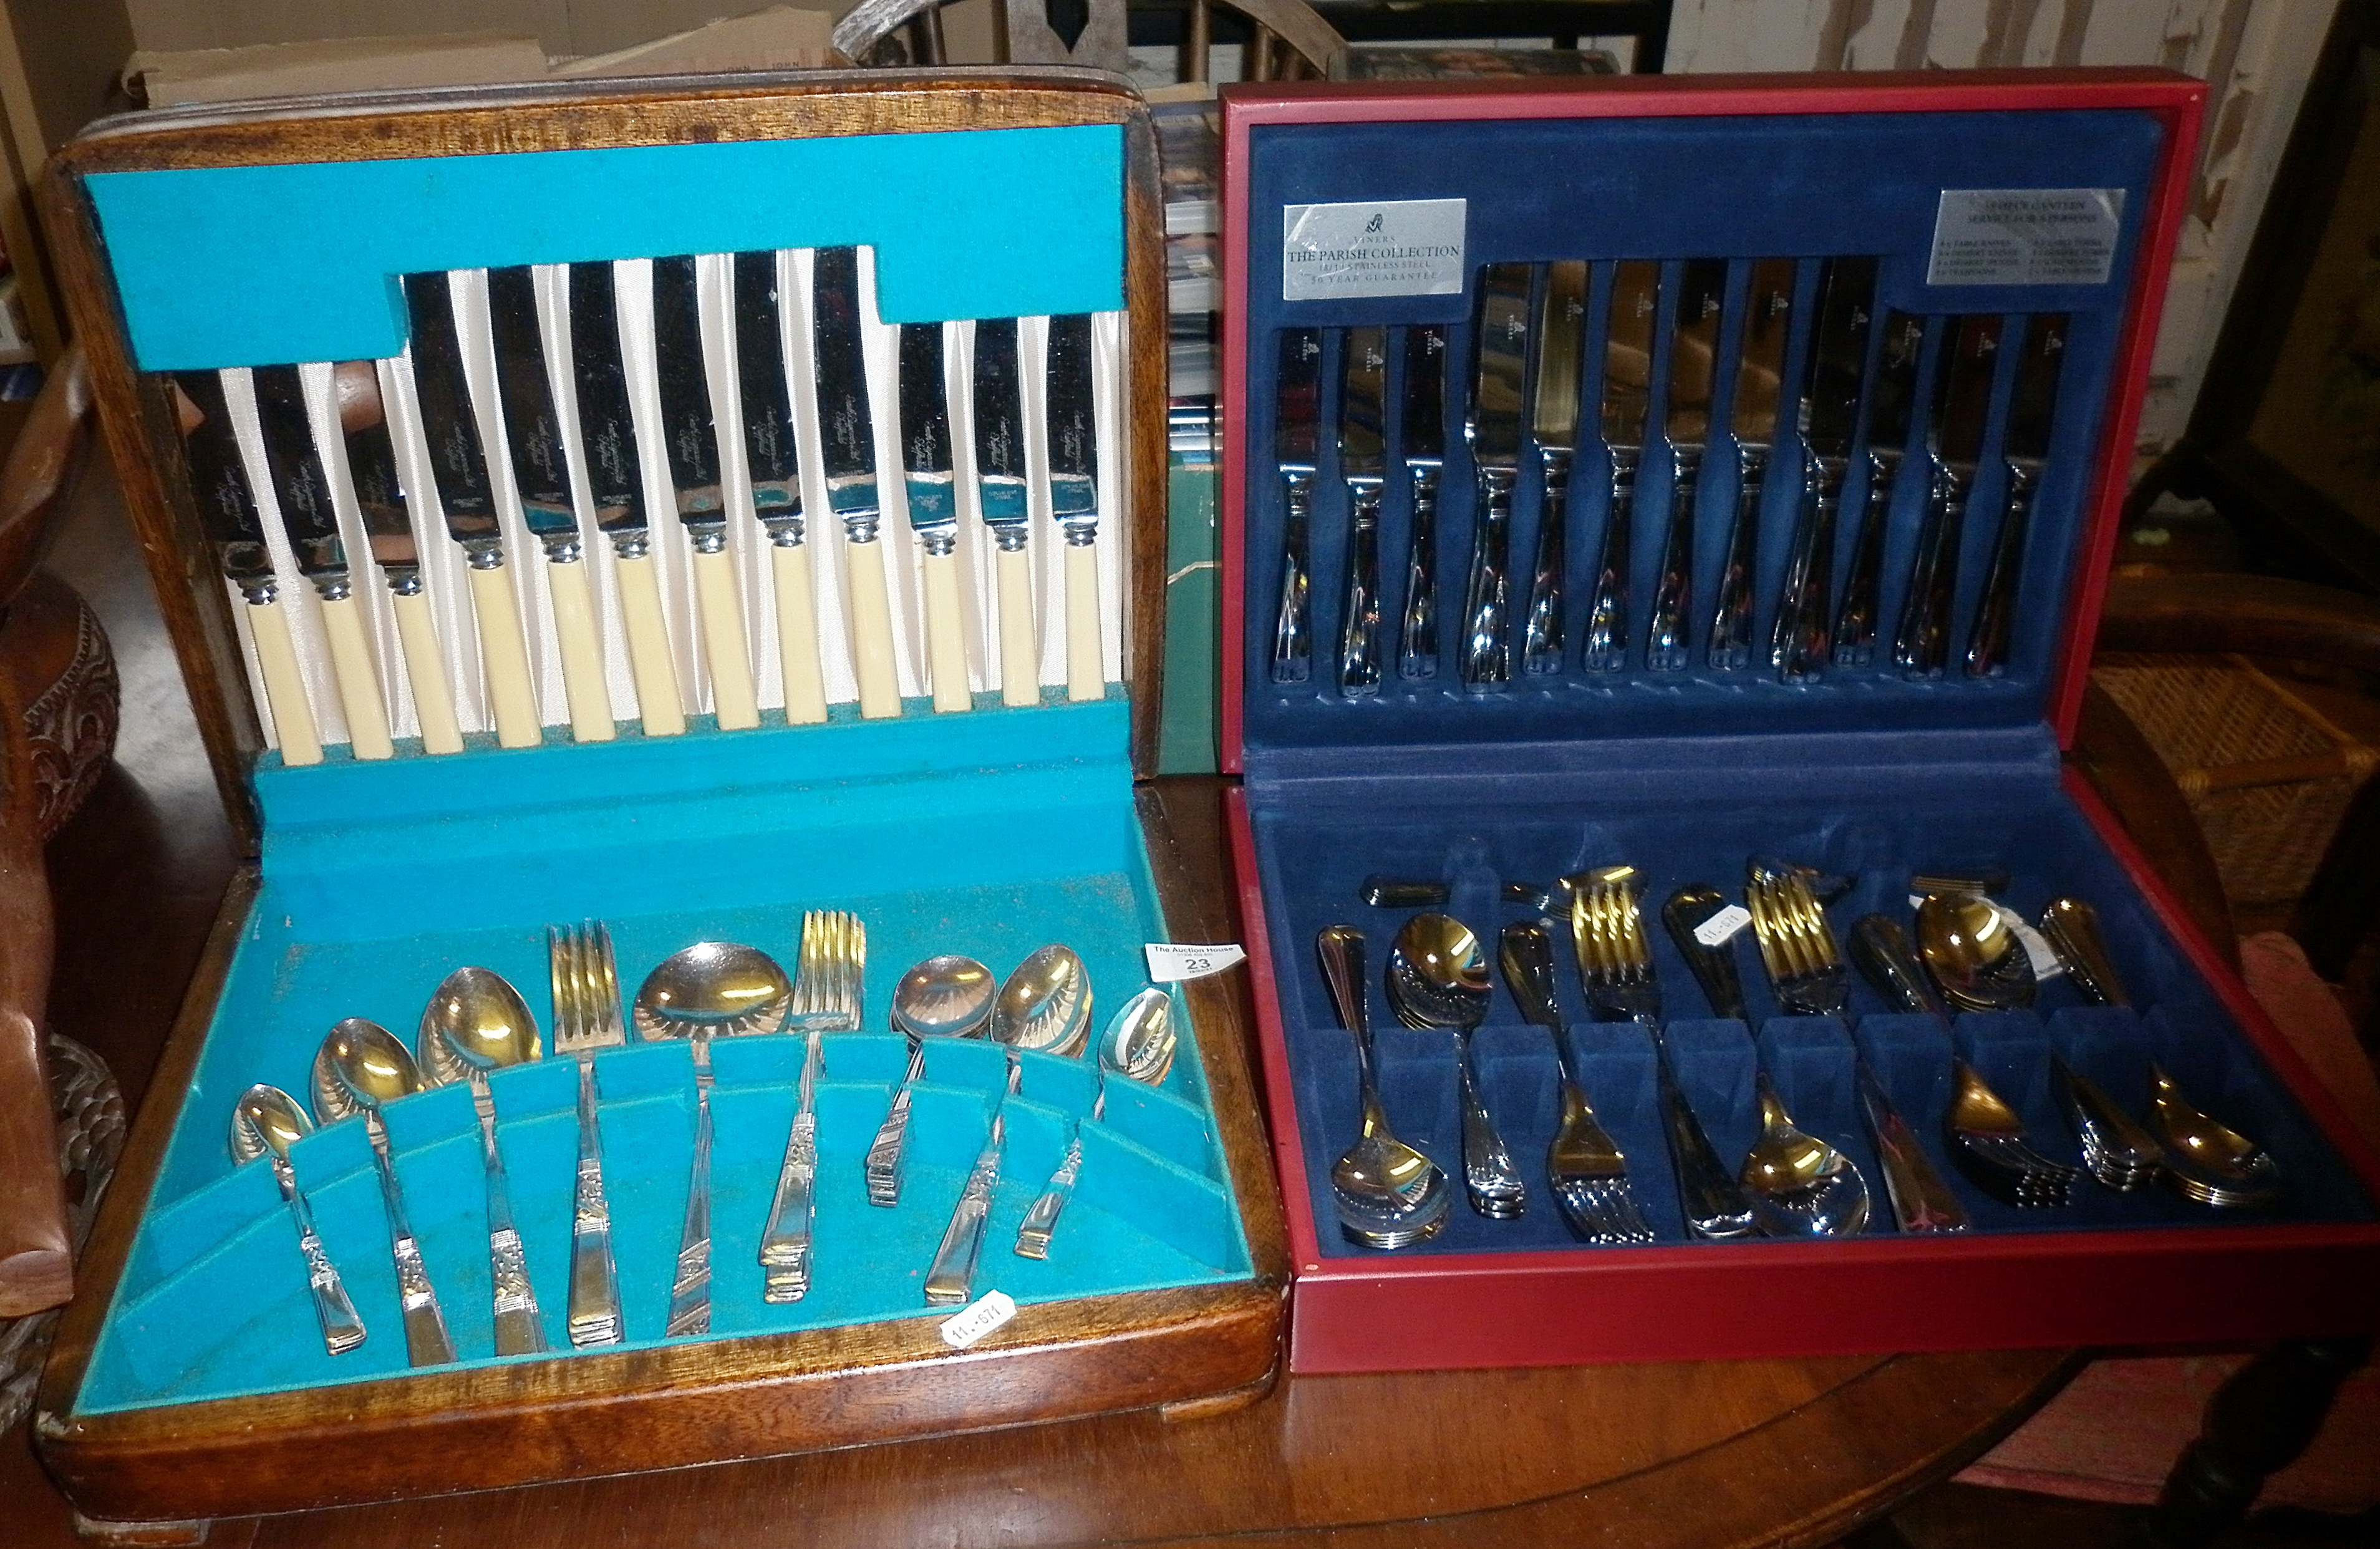 Two cased canteens of cutlery - Viners Parish, and silver-plate